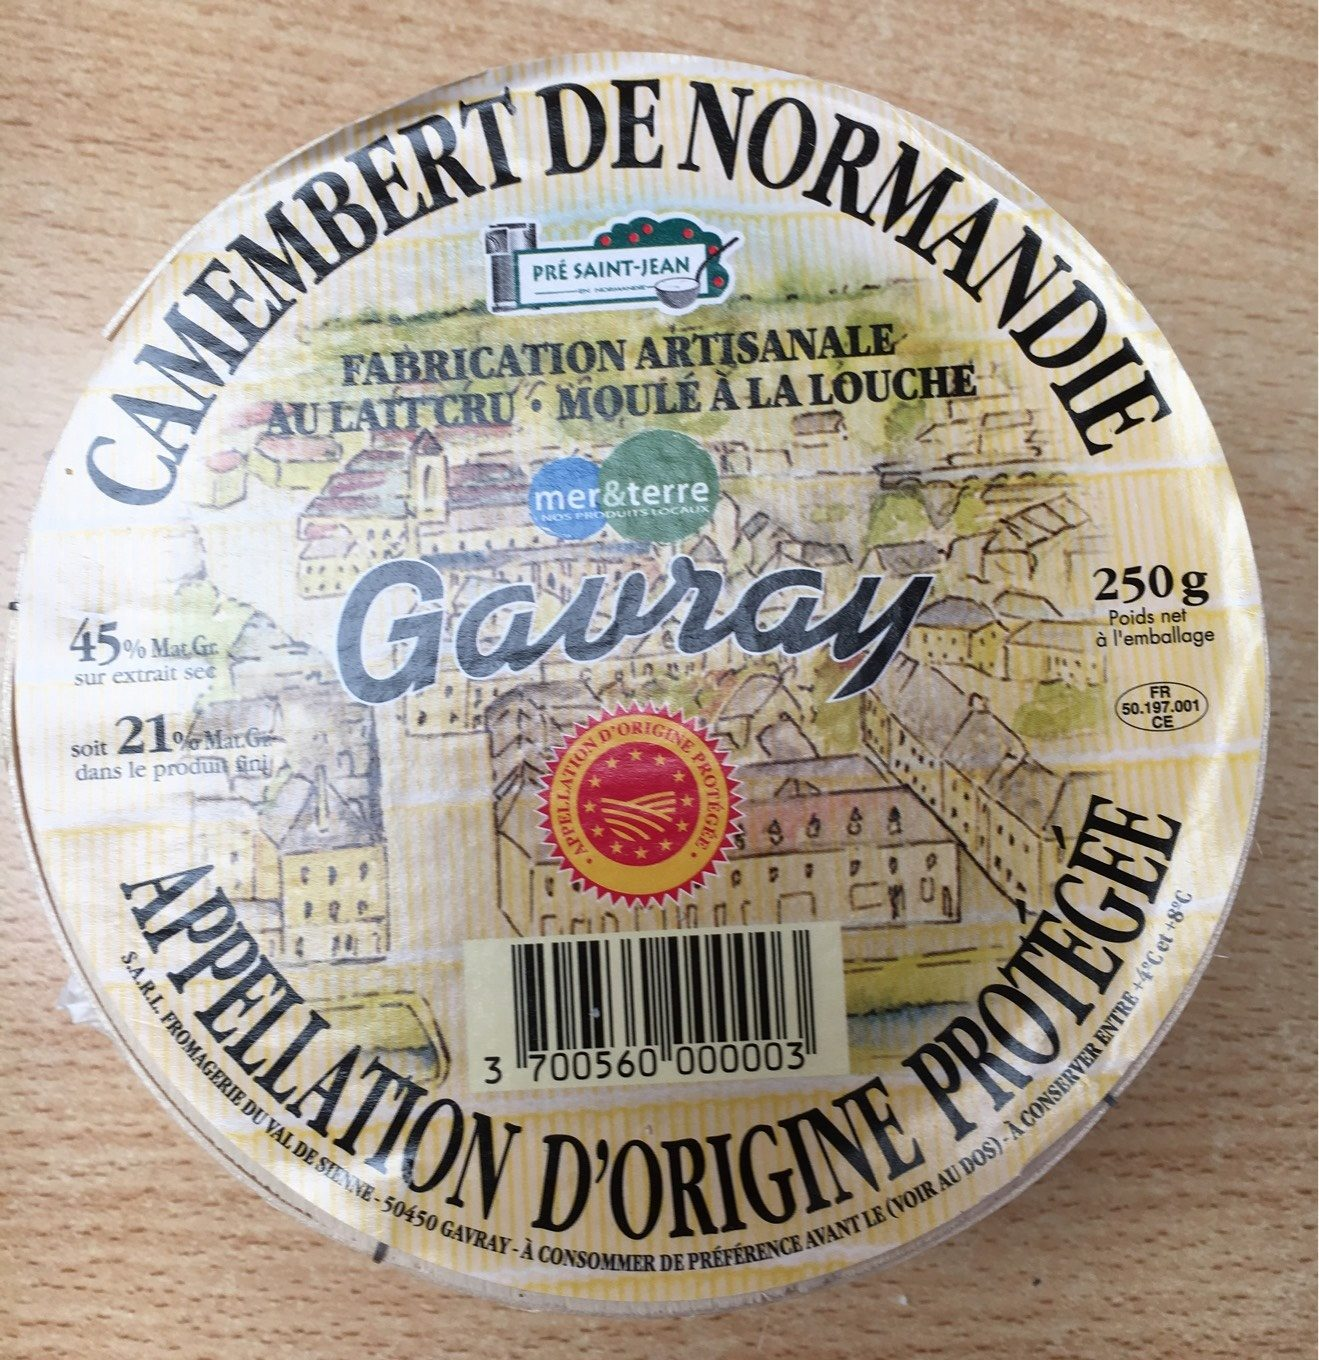 Camembert de Normandie Gavray - Product - fr